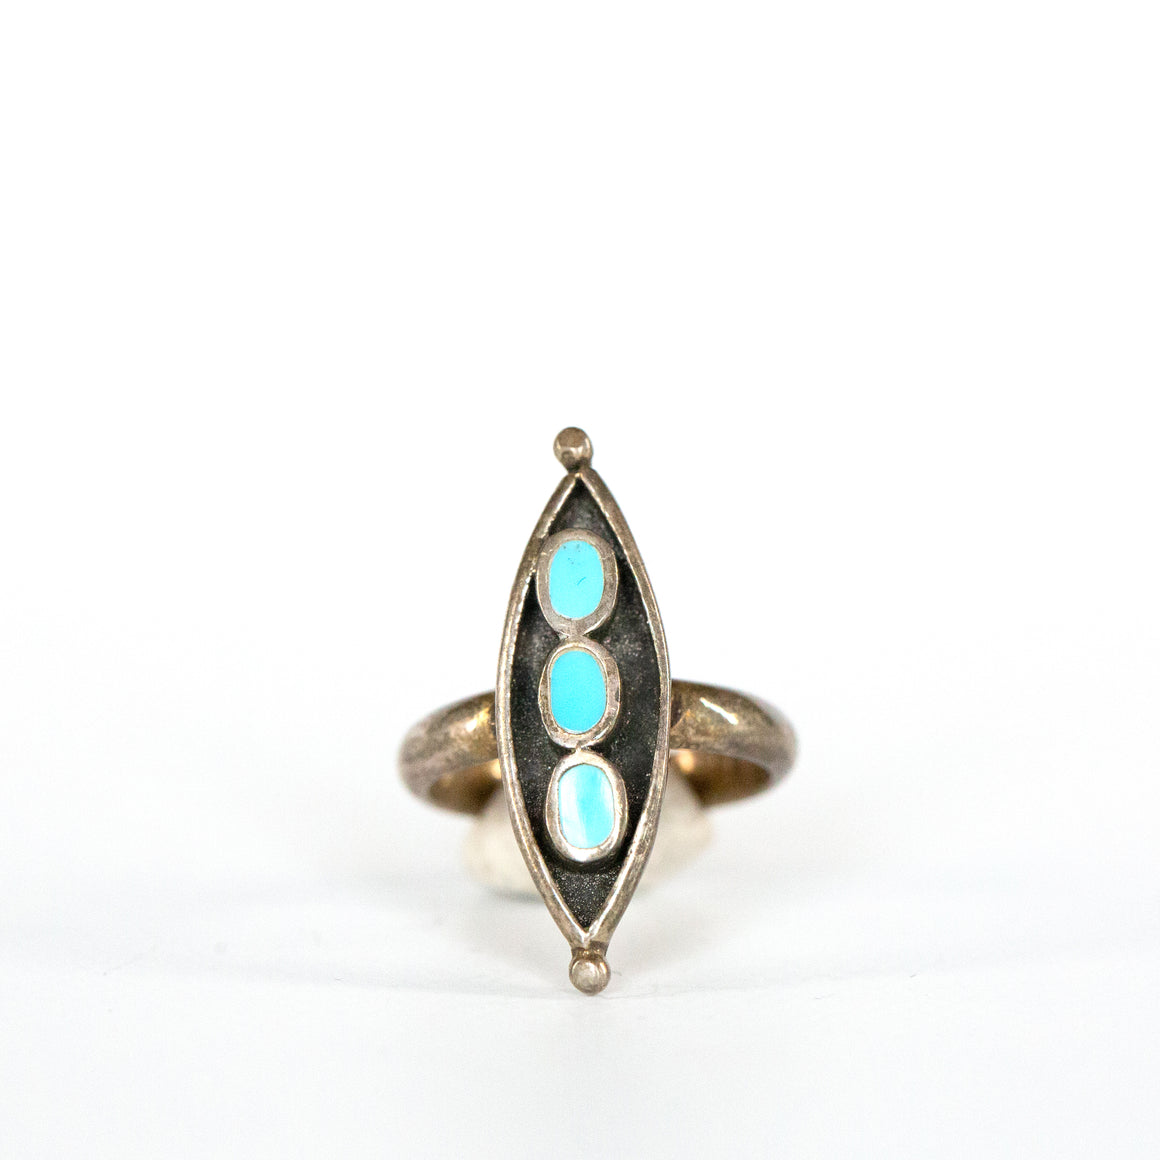 VINTAGE JEWELRY | STERLING MULTI-STONE TURQUOISE RING (SIZE 5.5)